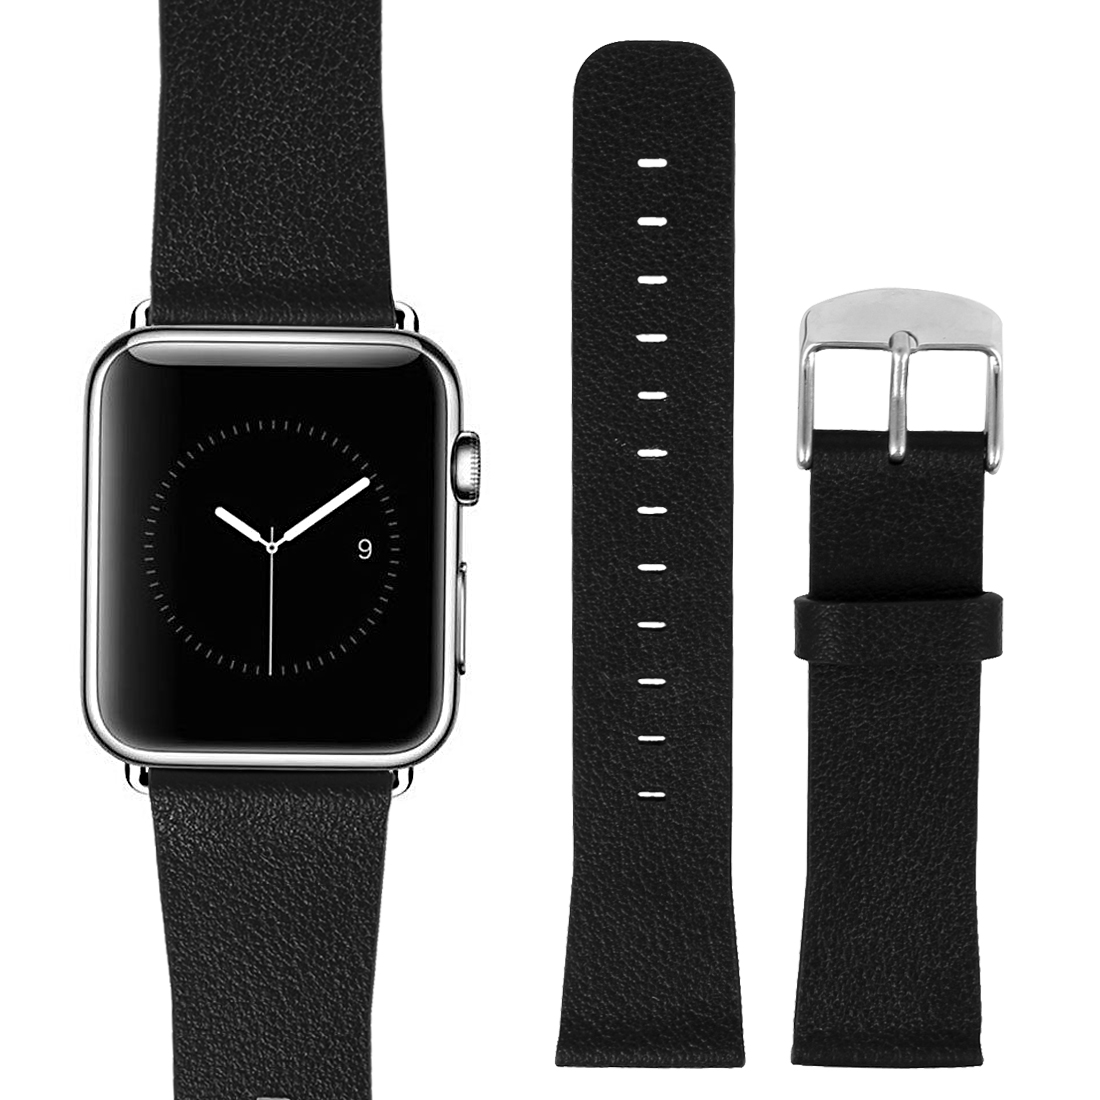 PU Leather Classic Buckle Watchband Strap Black for Apple Watch Sport 38mm